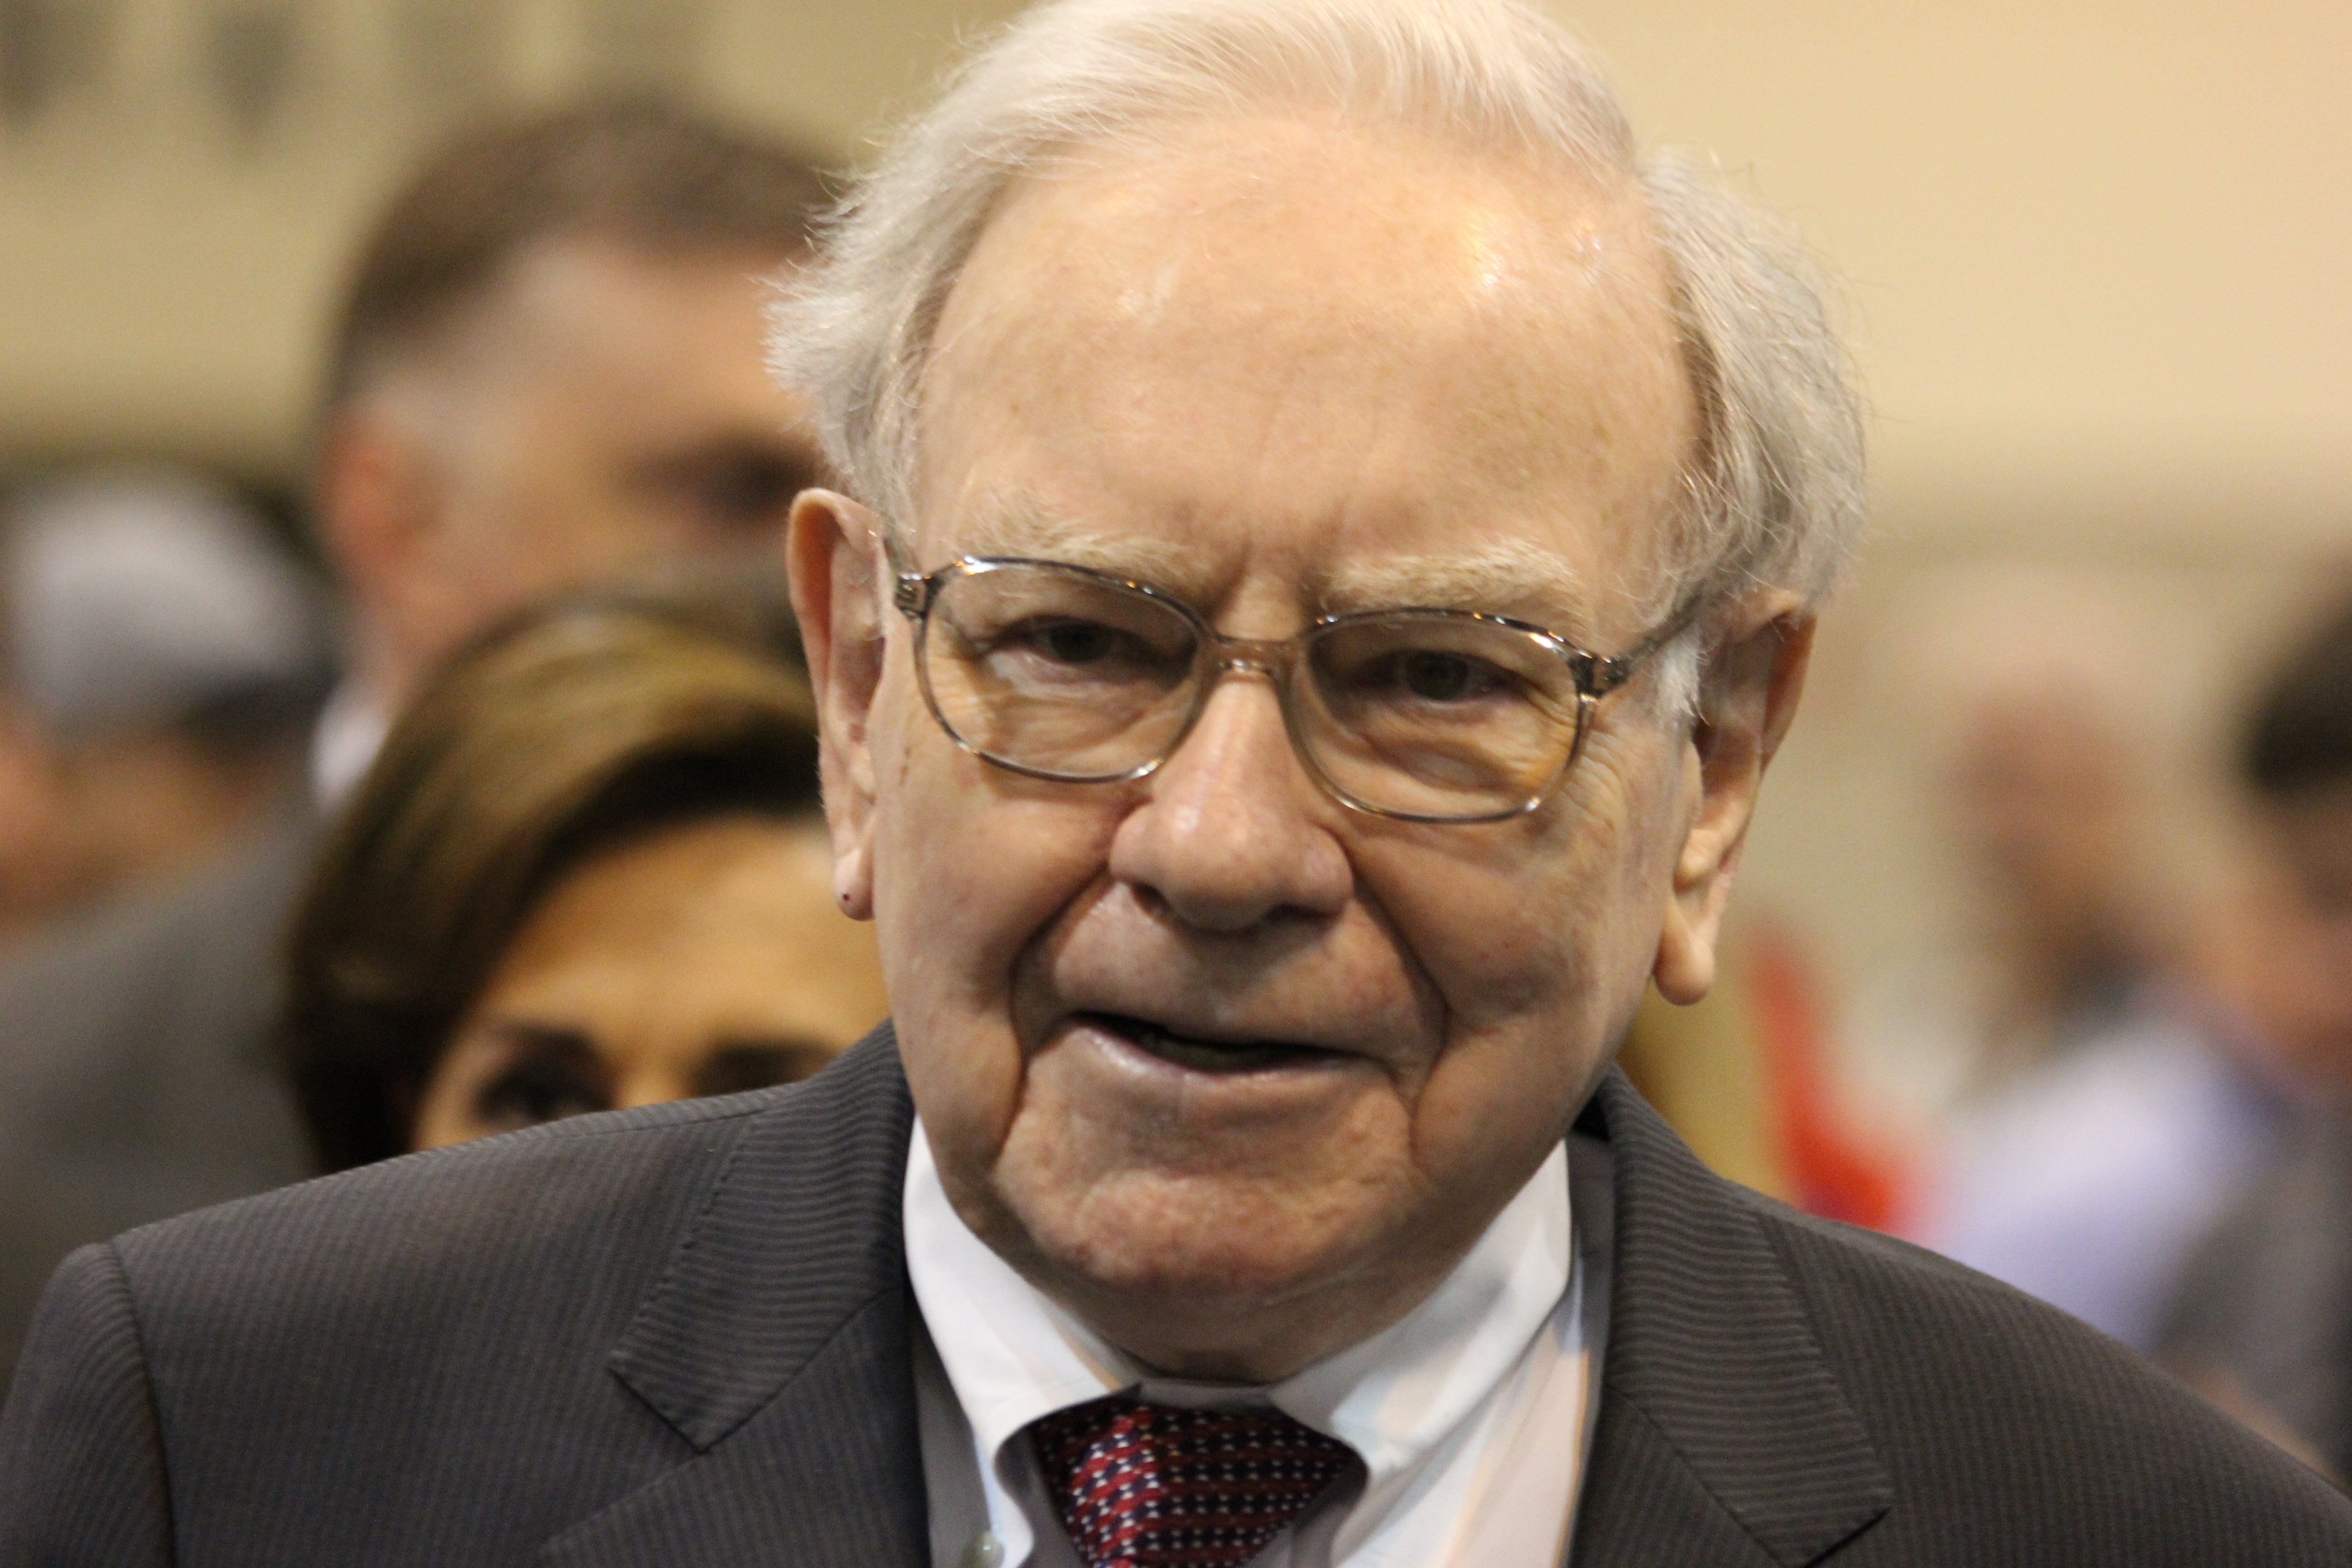 Warren Buffett's 5 Best Investing Tips for People Who Don't Follow the Stock Market